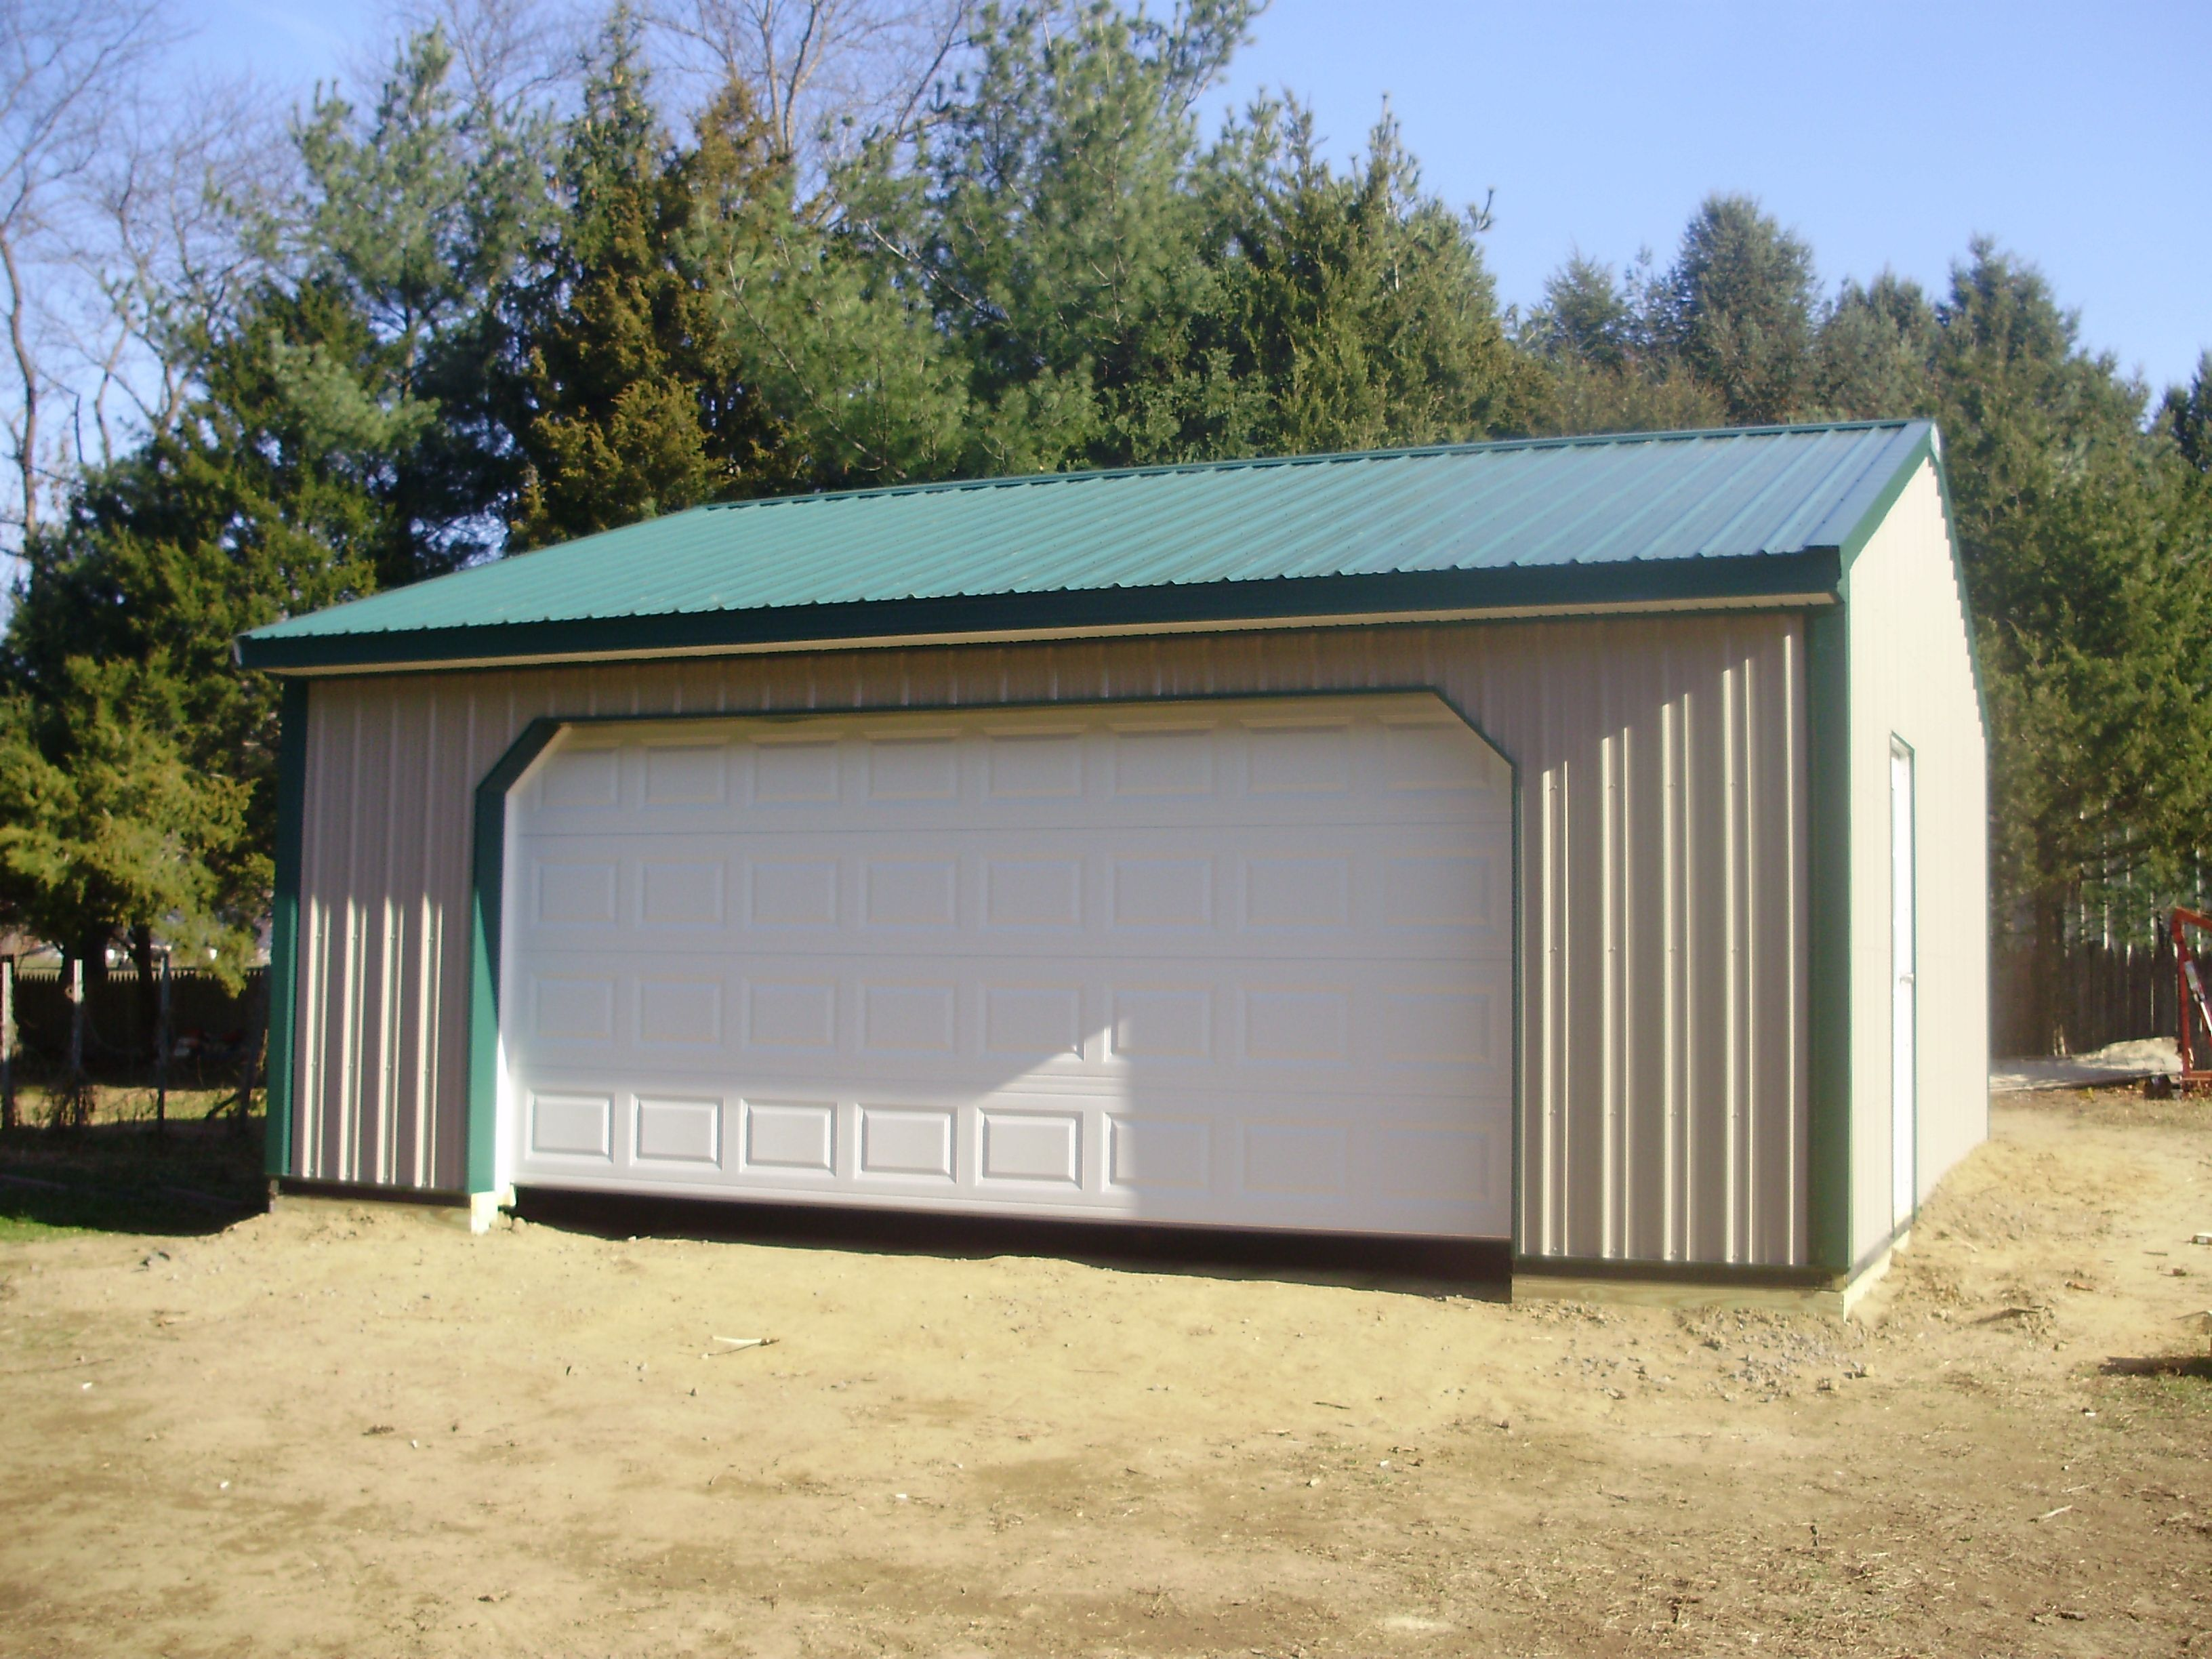 """Building Dimensions: 24' W x 24' L x 8 ' 4"""" H (ID# 269)  Visit: http://pioneerpolebuildings.com/portfolio/project/24-w-x-24-l-x-84-h-id269-total-cost-8153  Like Us on Facebook! www.facebook.com/... Call: 888-448-2505 for any questions!"""